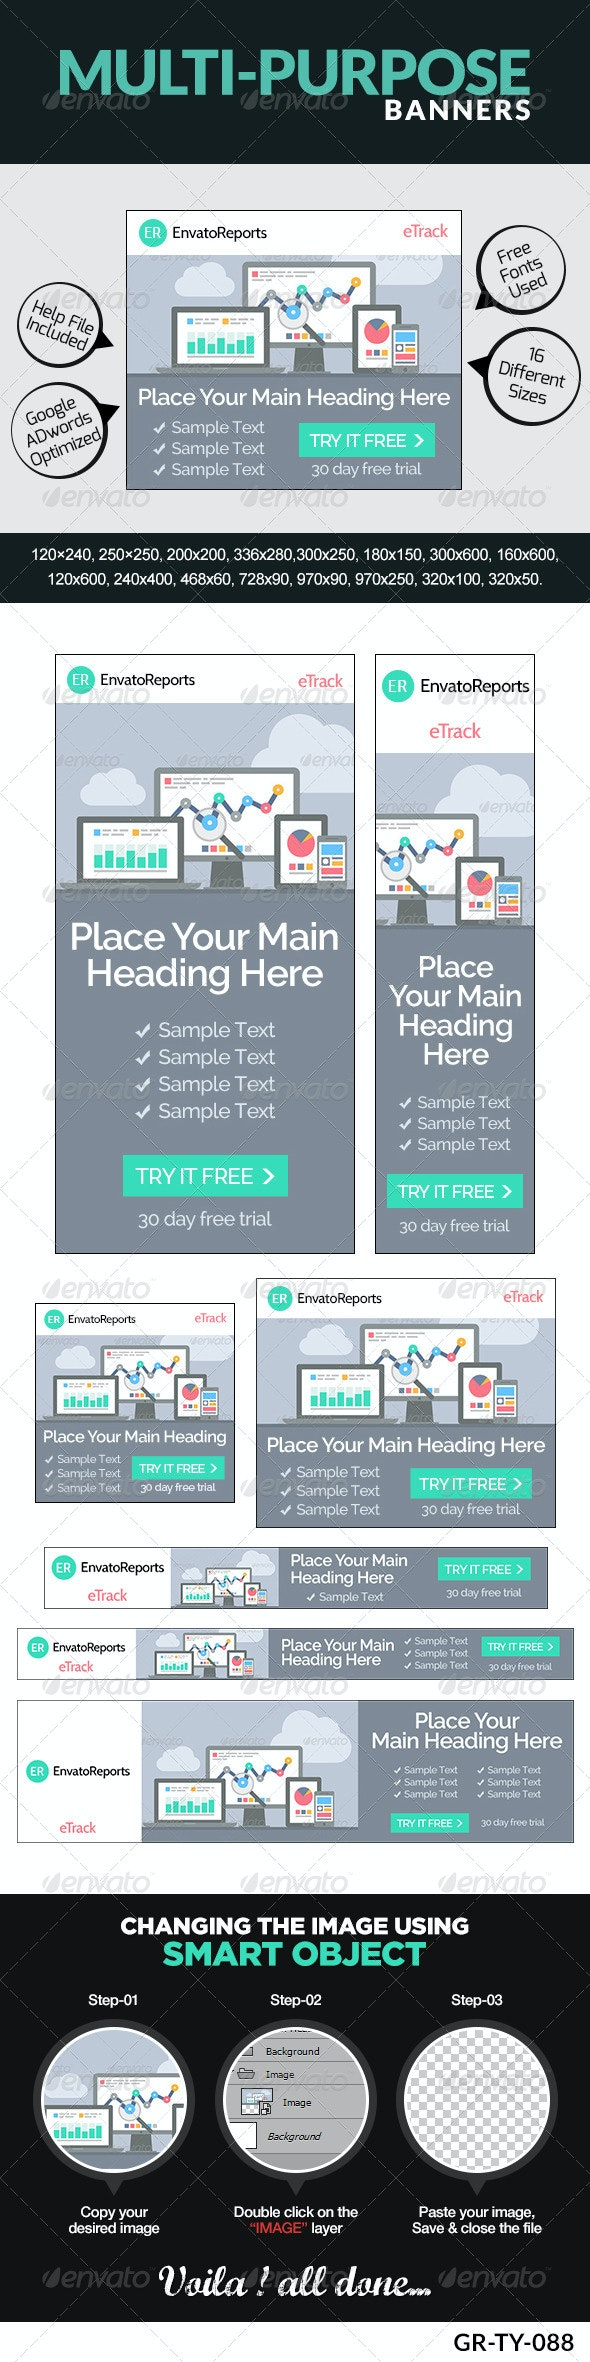 Multi Purpose Banner Ad Set - Banners & Ads Web Elements